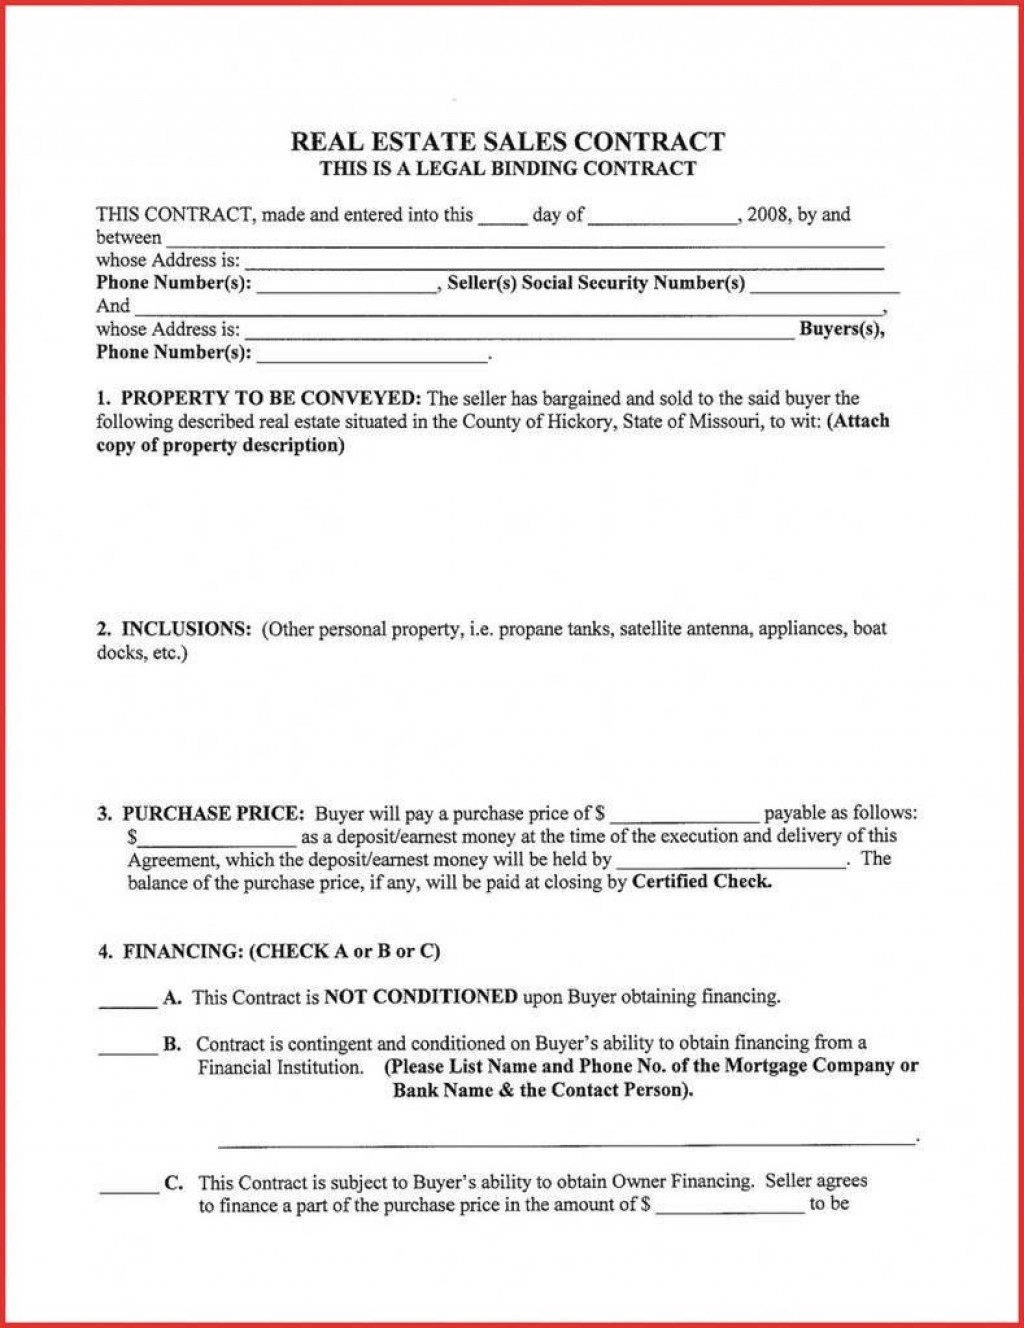 003 Astounding Real Estate Purchase Contract California Picture  Commercial Agreement PdfLarge